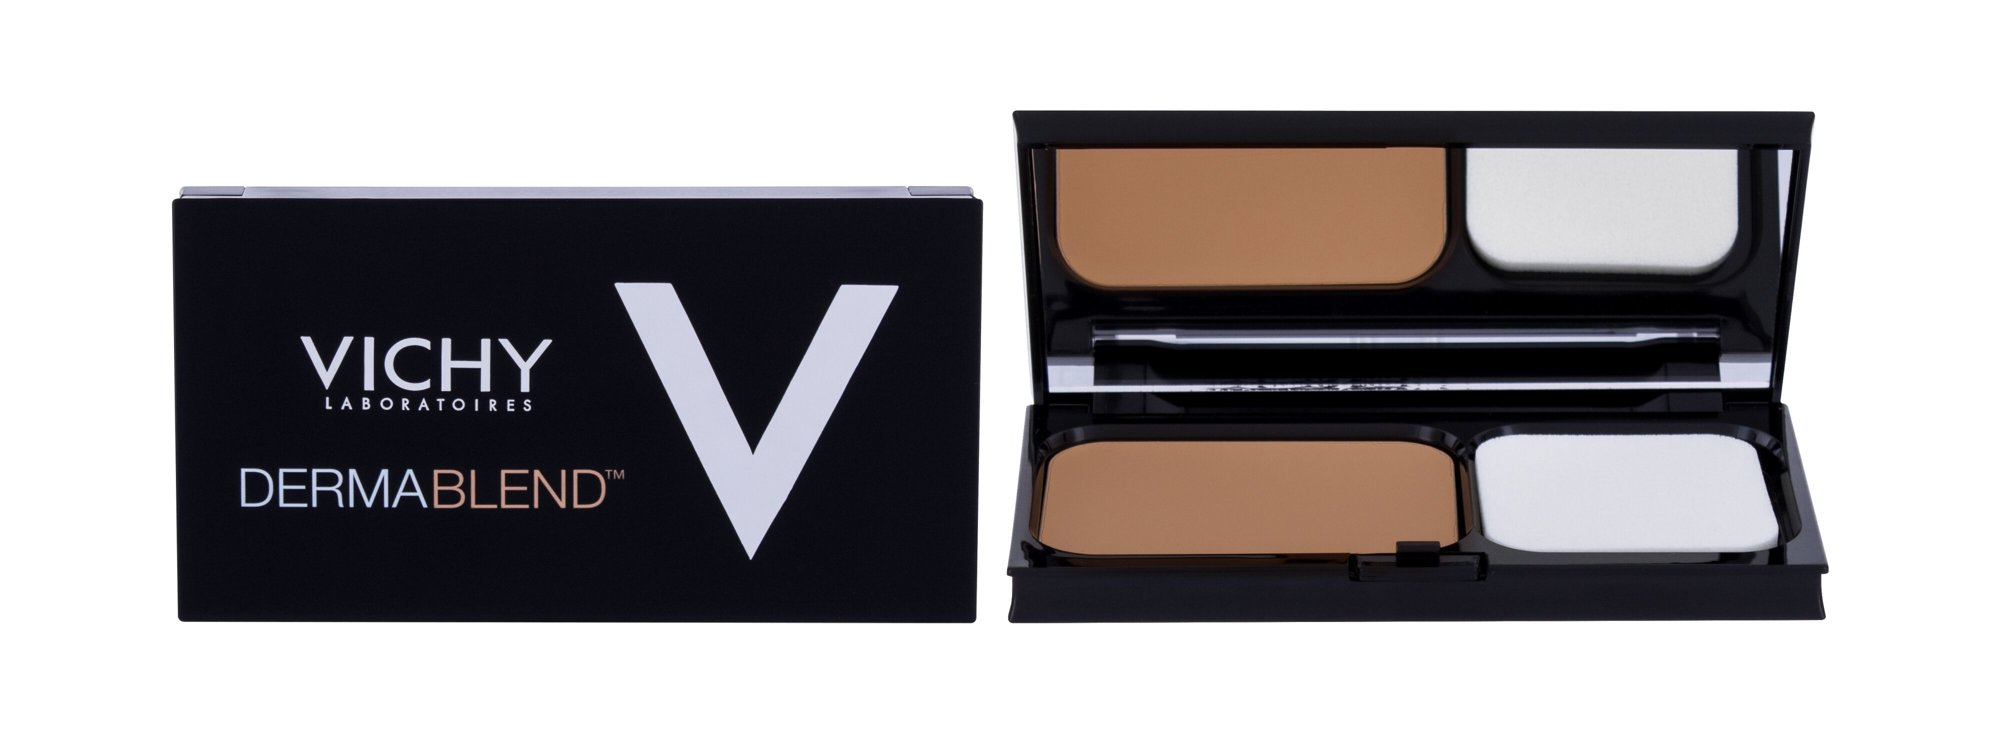 Vichy Dermablend Corrective Compact Cream Foundation - (45 Gold) makeup SPF30 W Objem: 9,5 ml